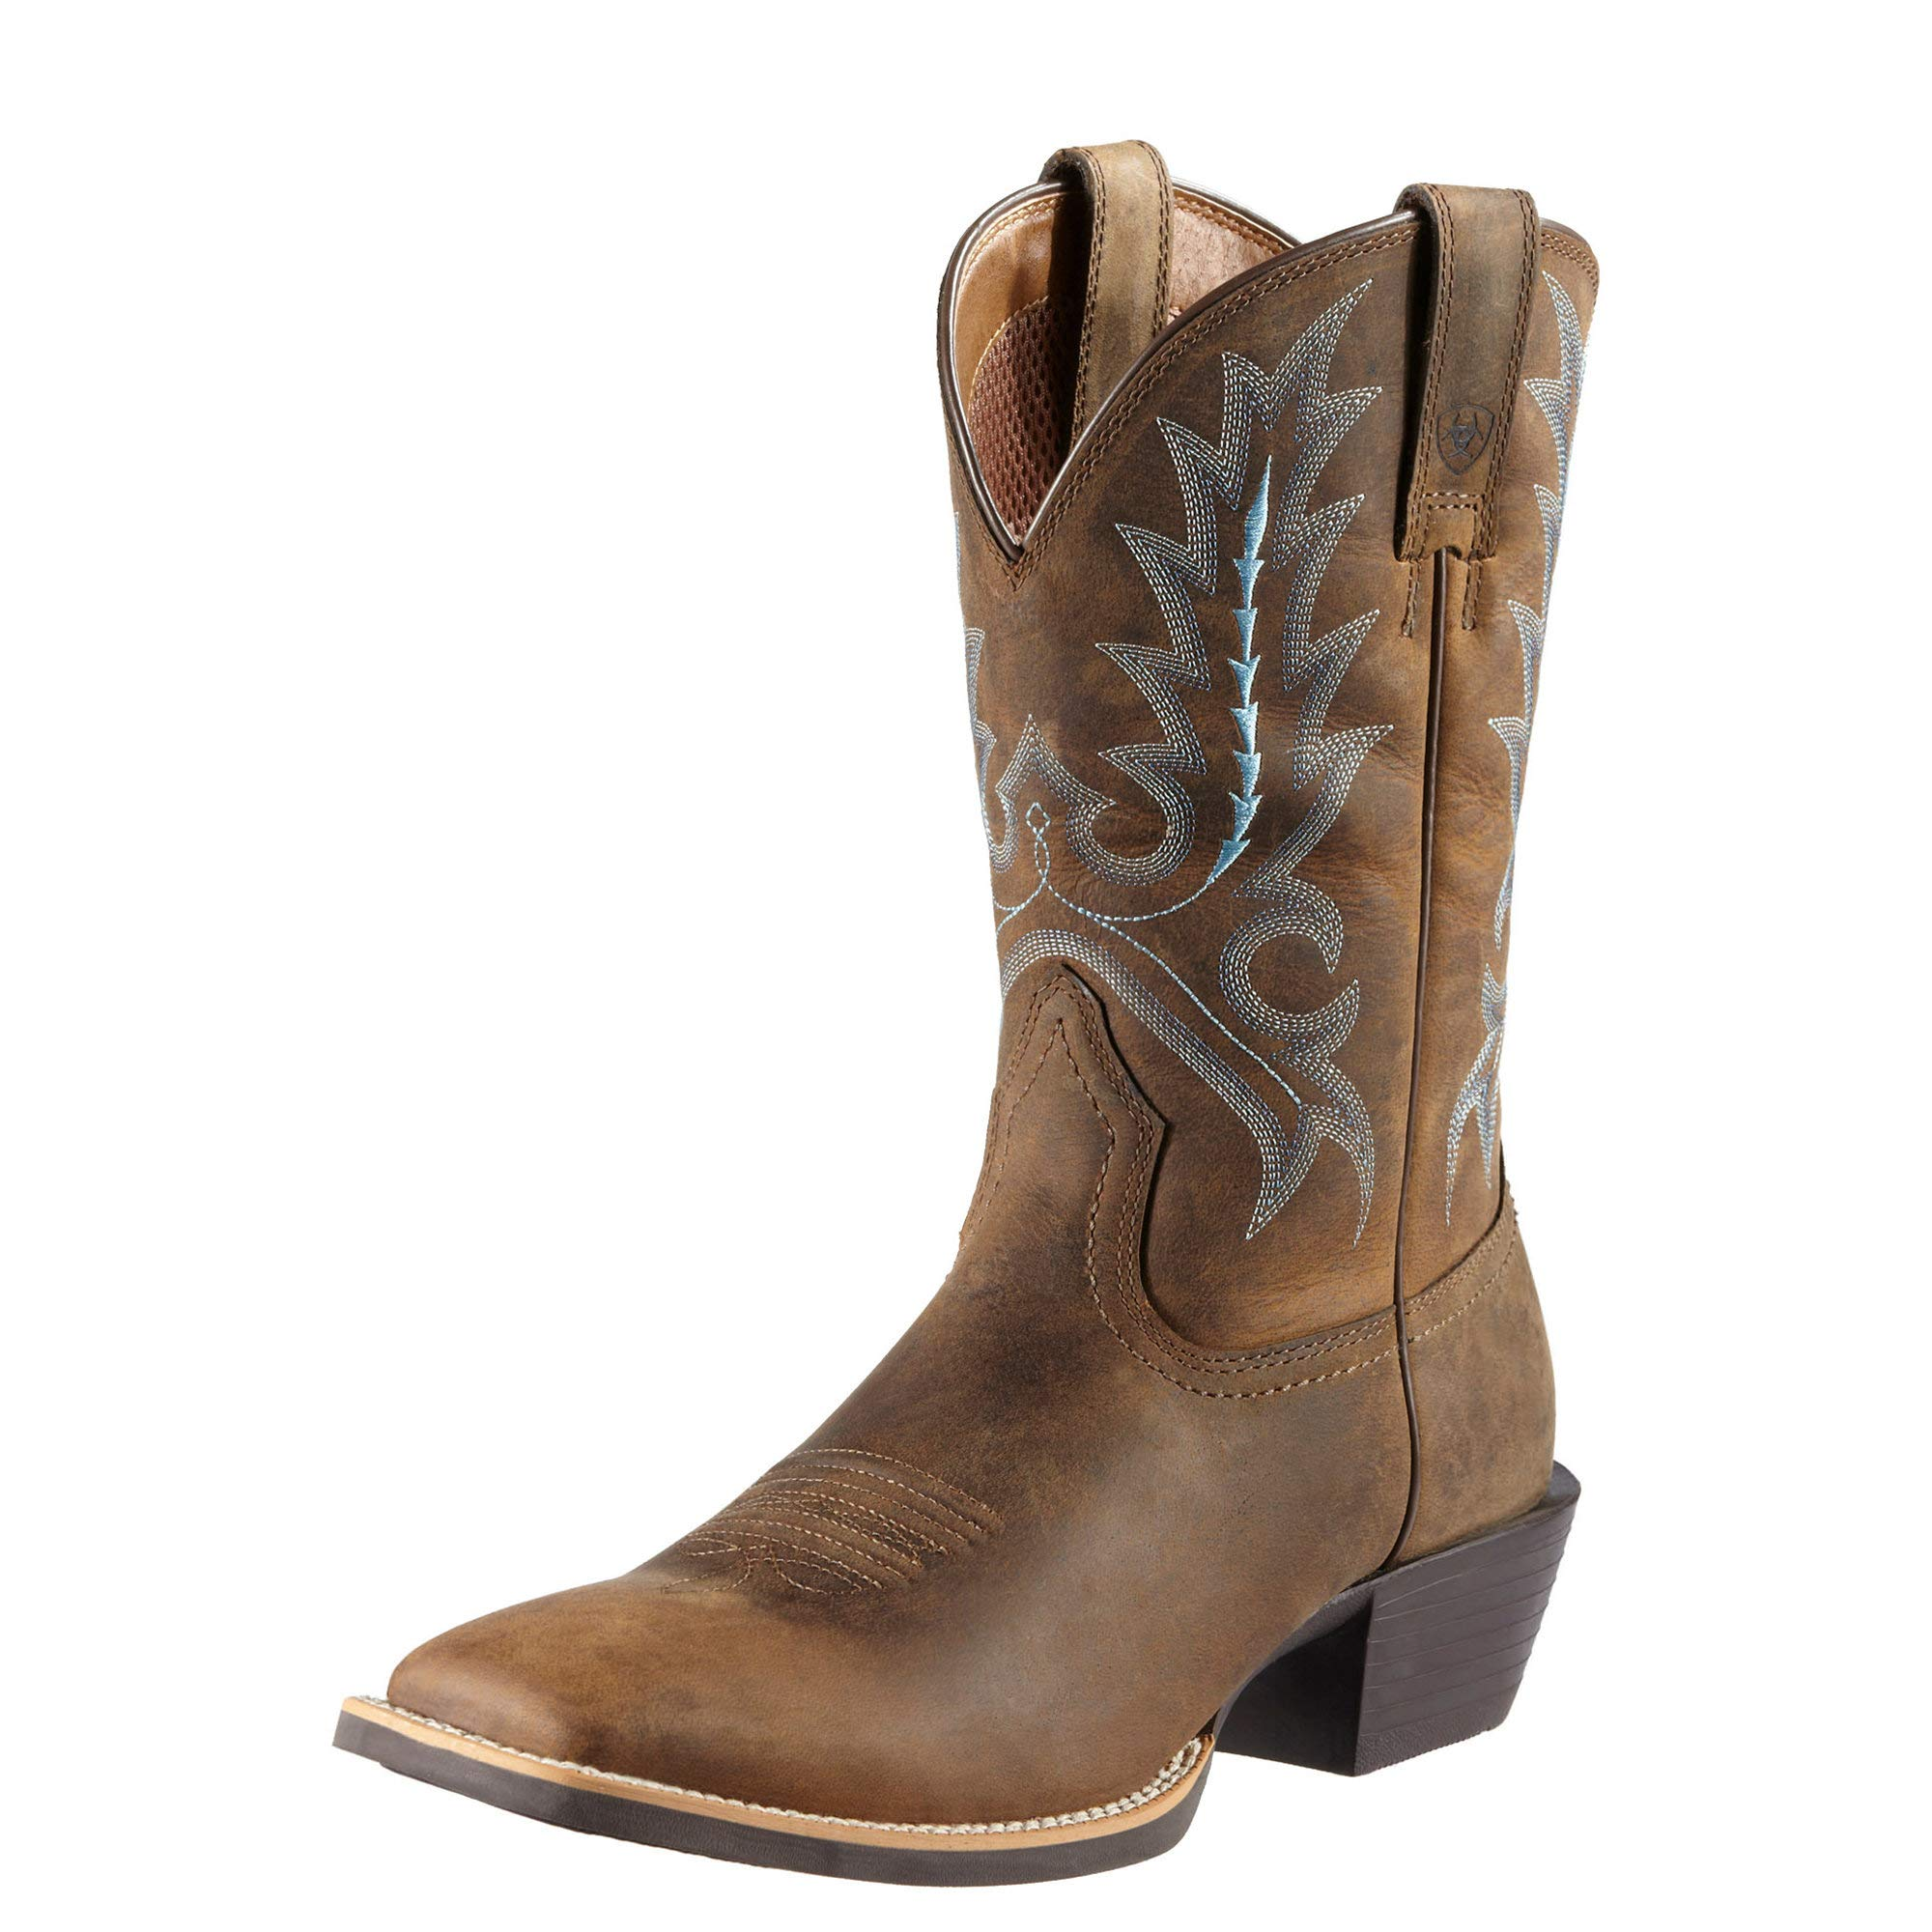 Ariat Men's Sport Outfitter Western Cowboy Boot, Distressed Brown, 8 M US